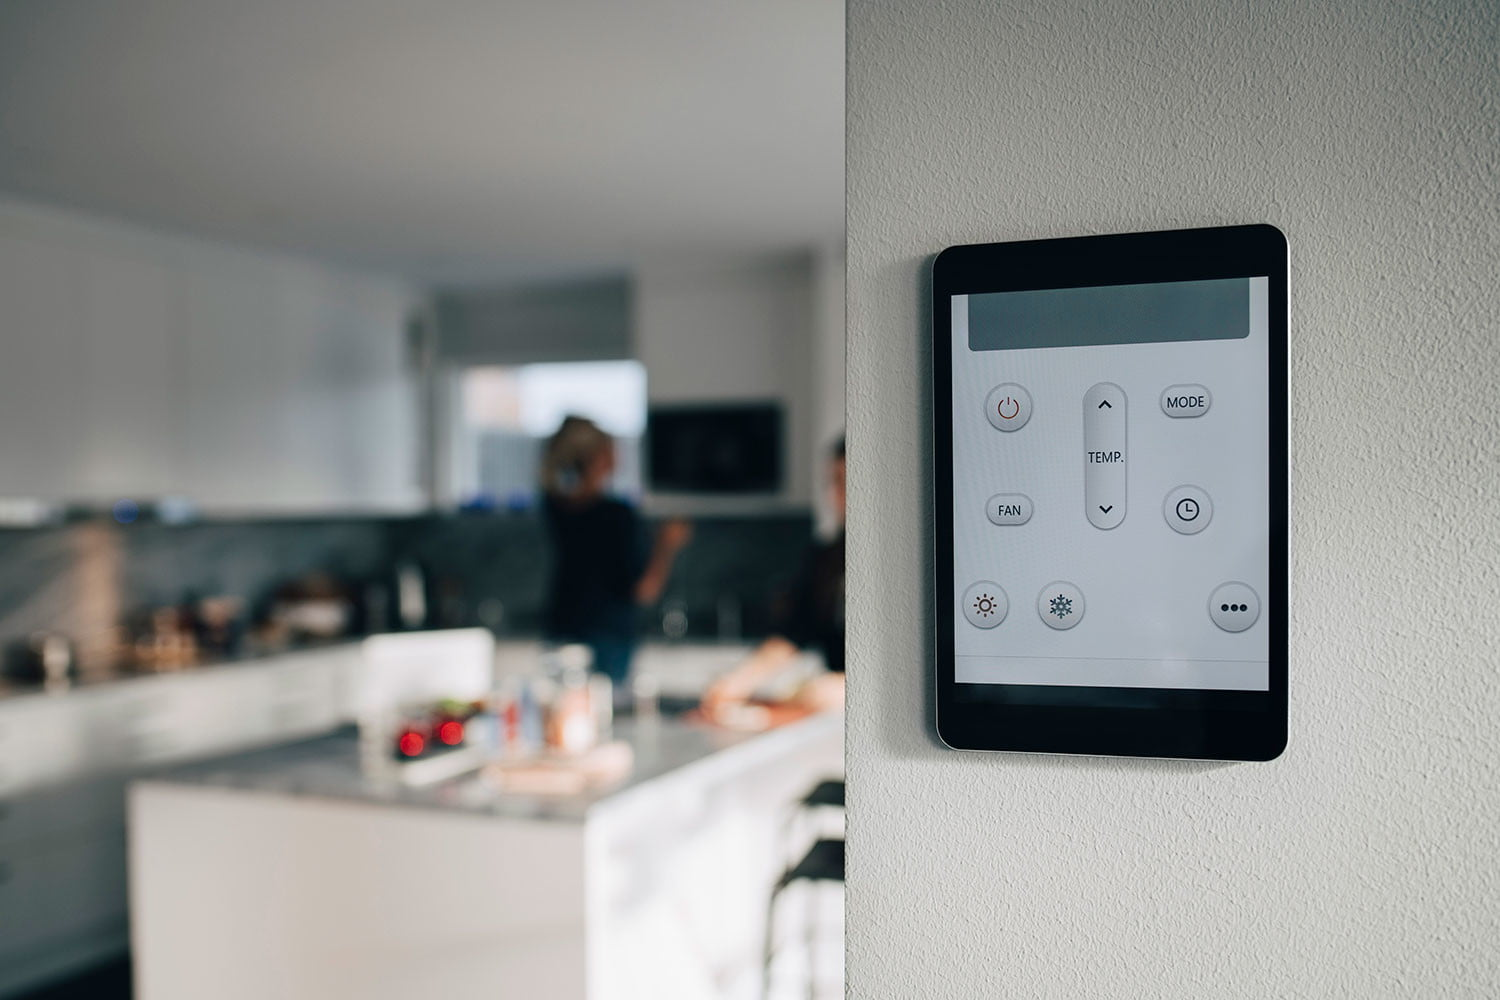 4 Ways to Synch Up Your Home HVAC System to Smart Devices